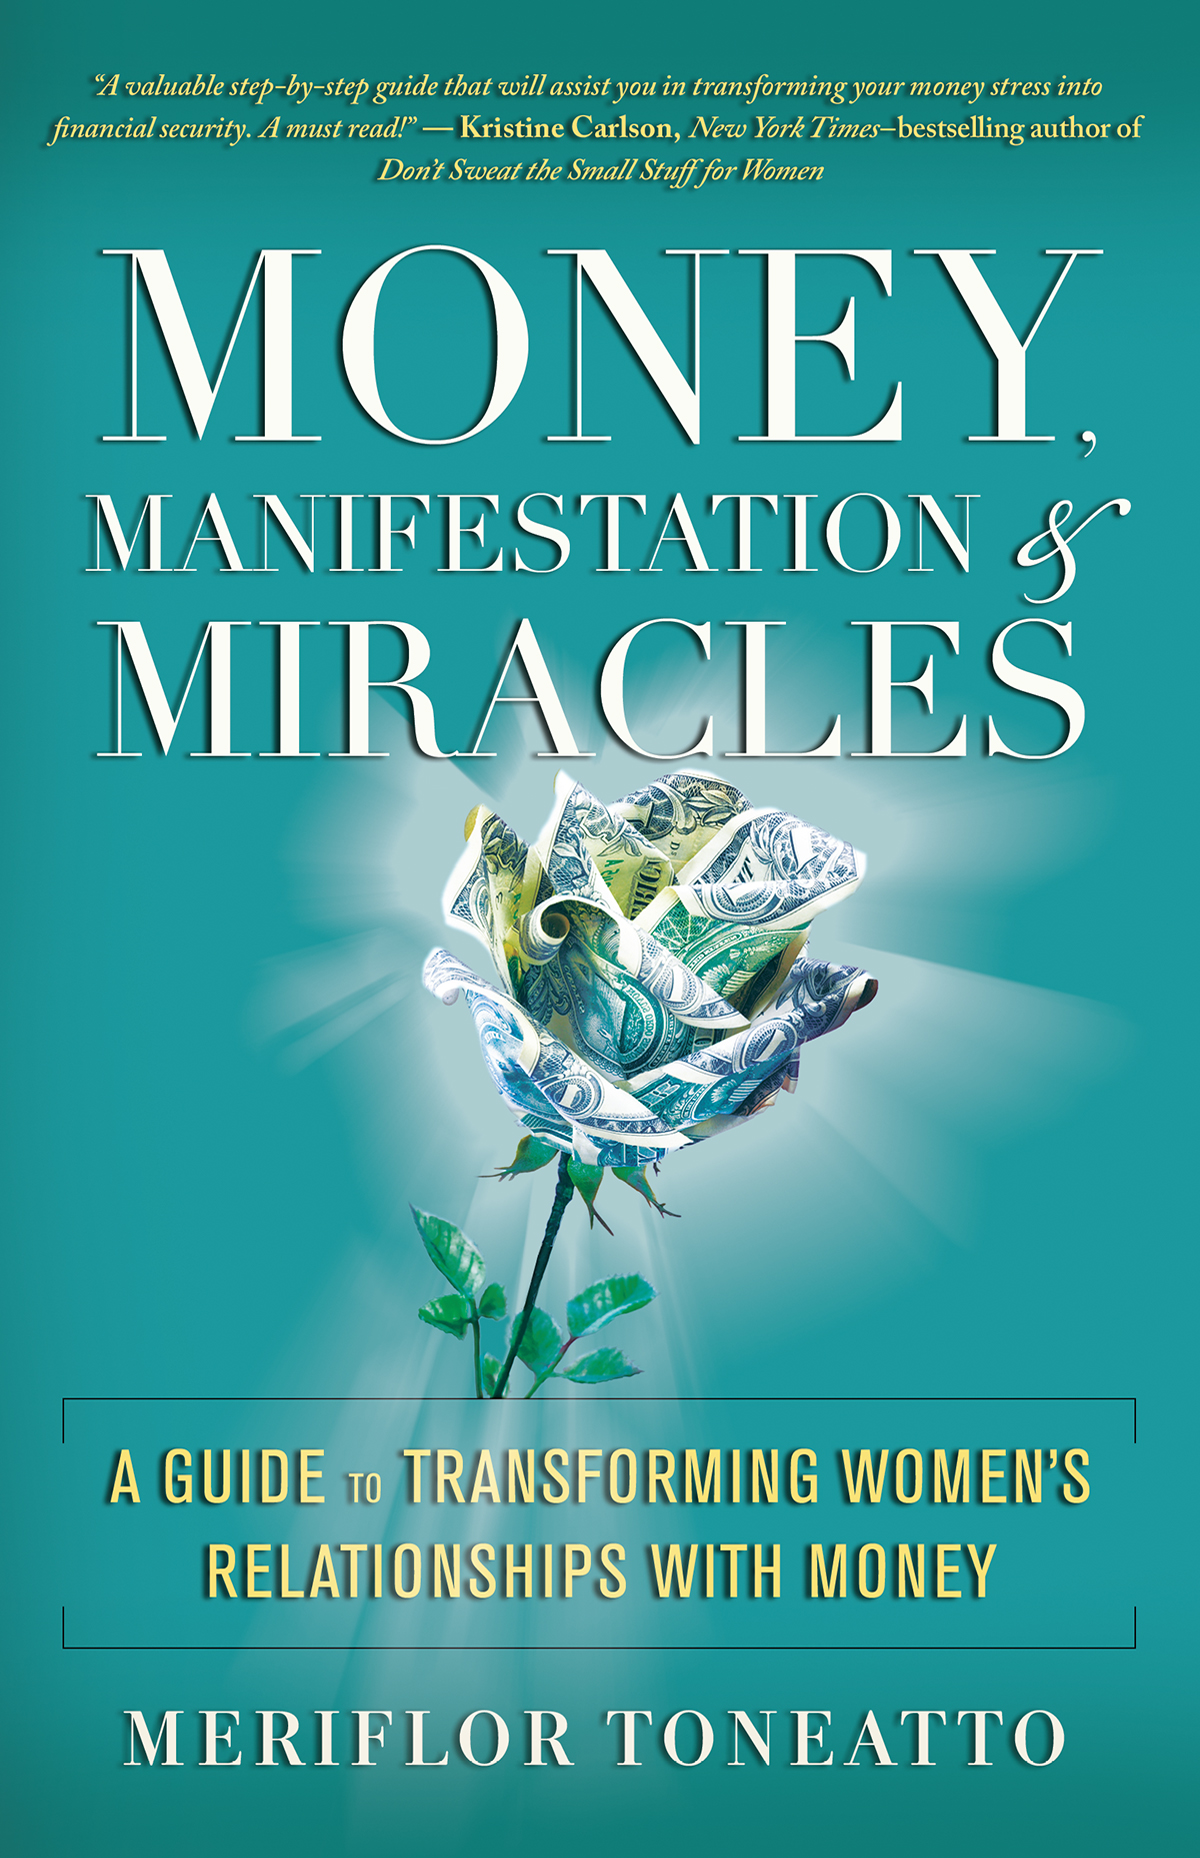 Money, Manifestation & Miracles